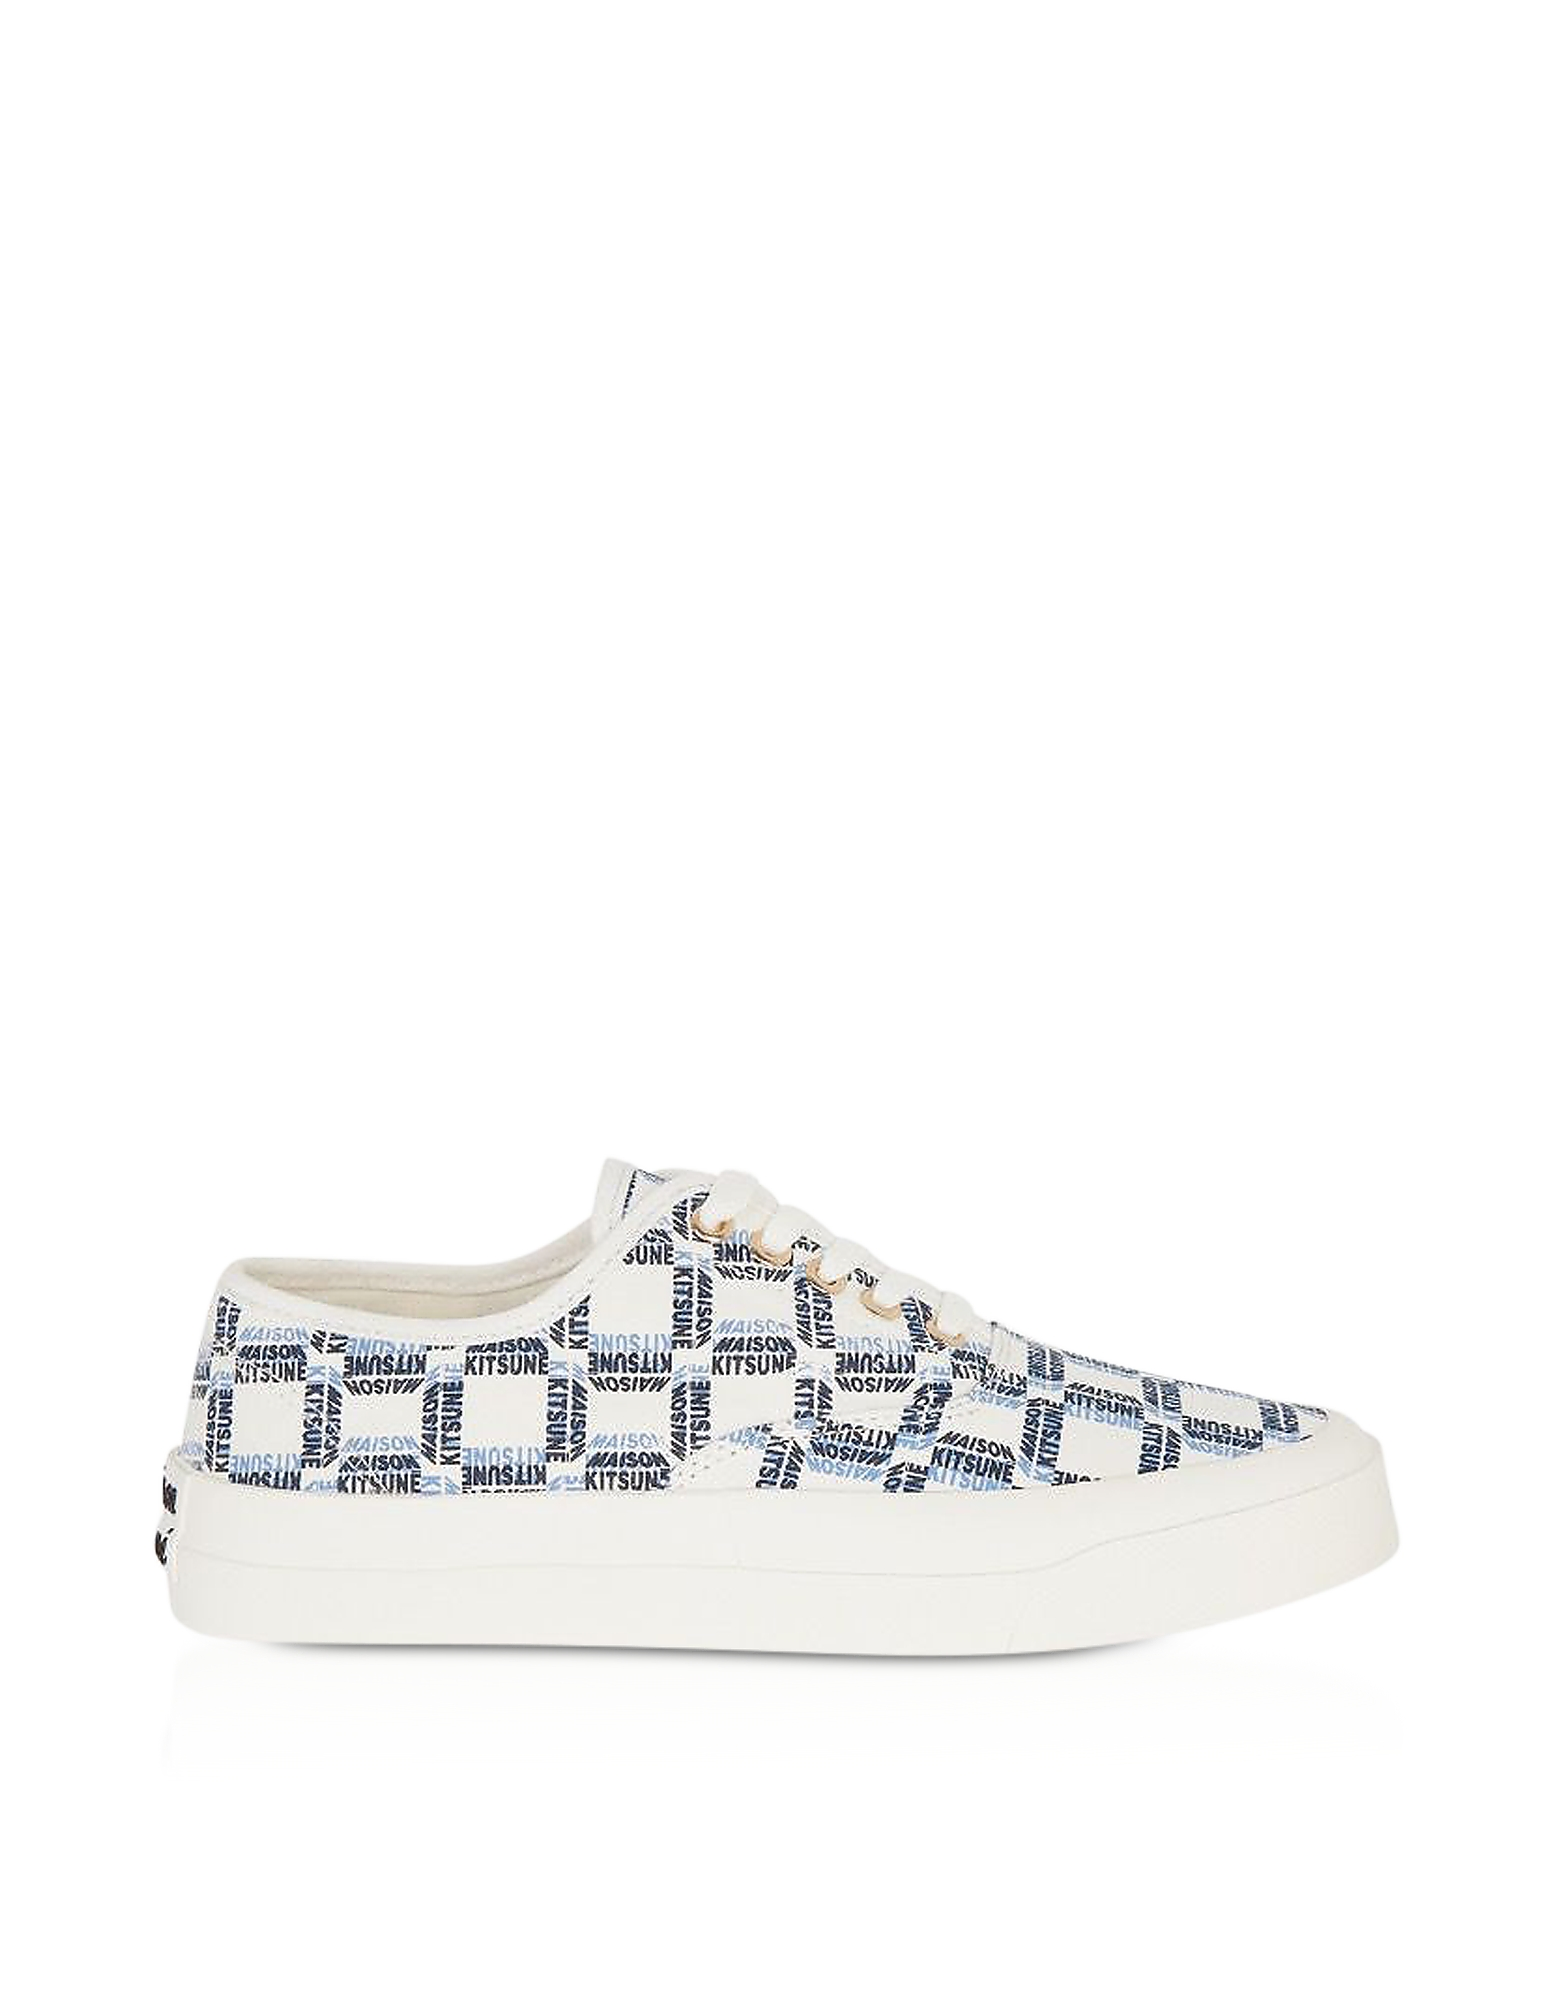 Maison Kitsuné Designer Shoes, All-Over Rectangle Laced Canvas Sneaker